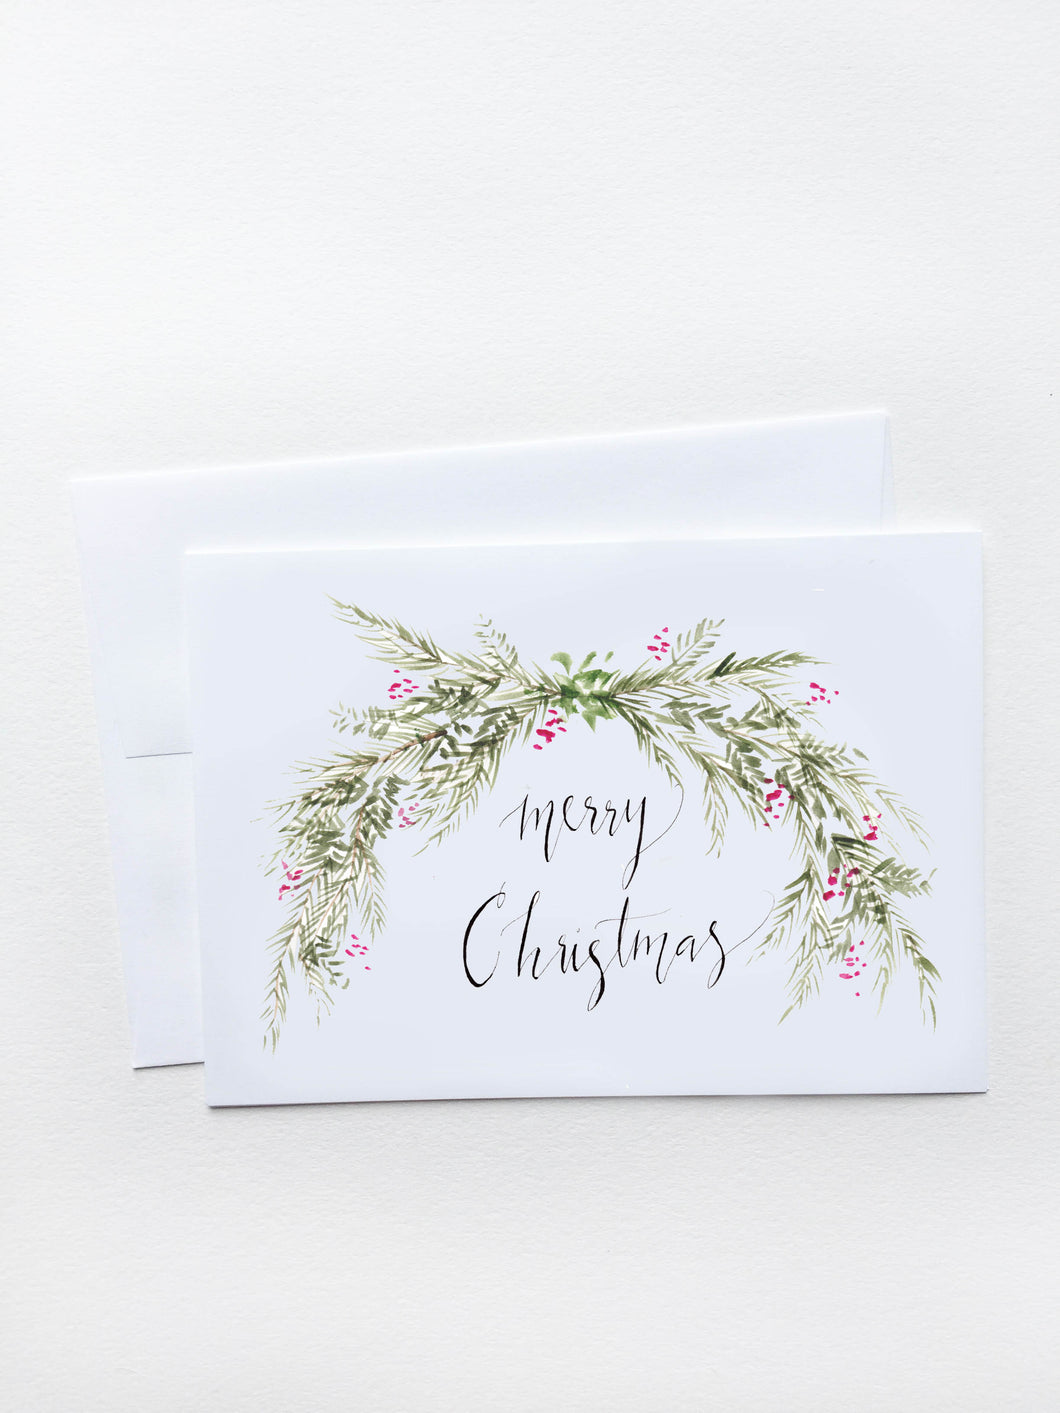 Merry Christmas Holly Garland Card